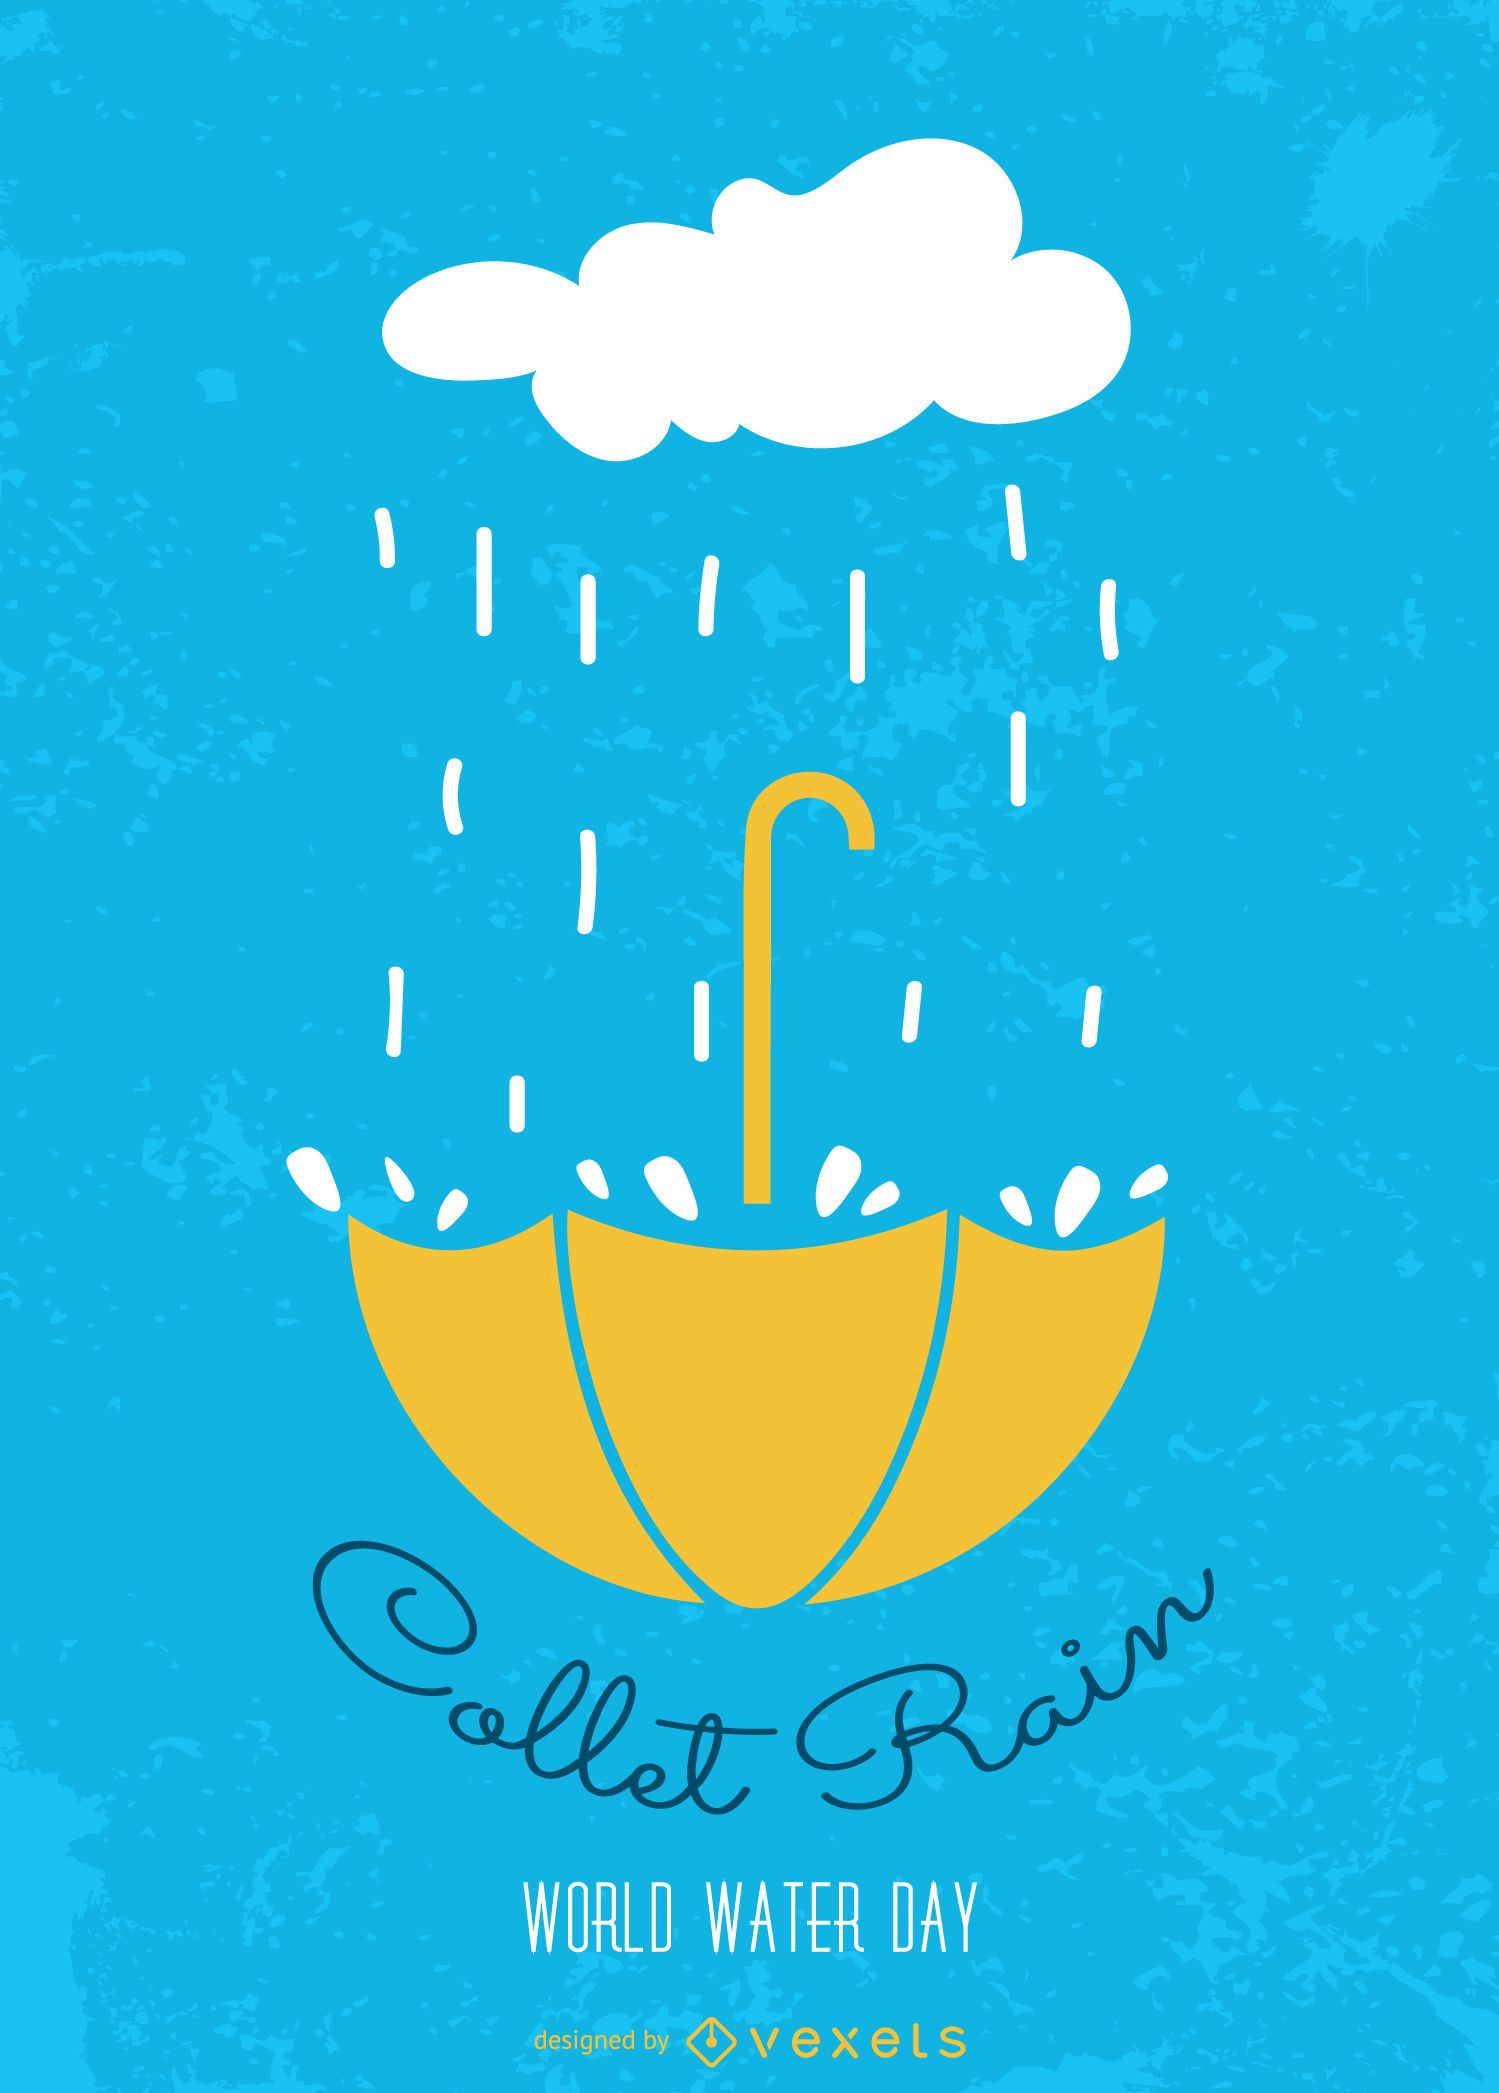 World Water Day Collect Rain Vector Download